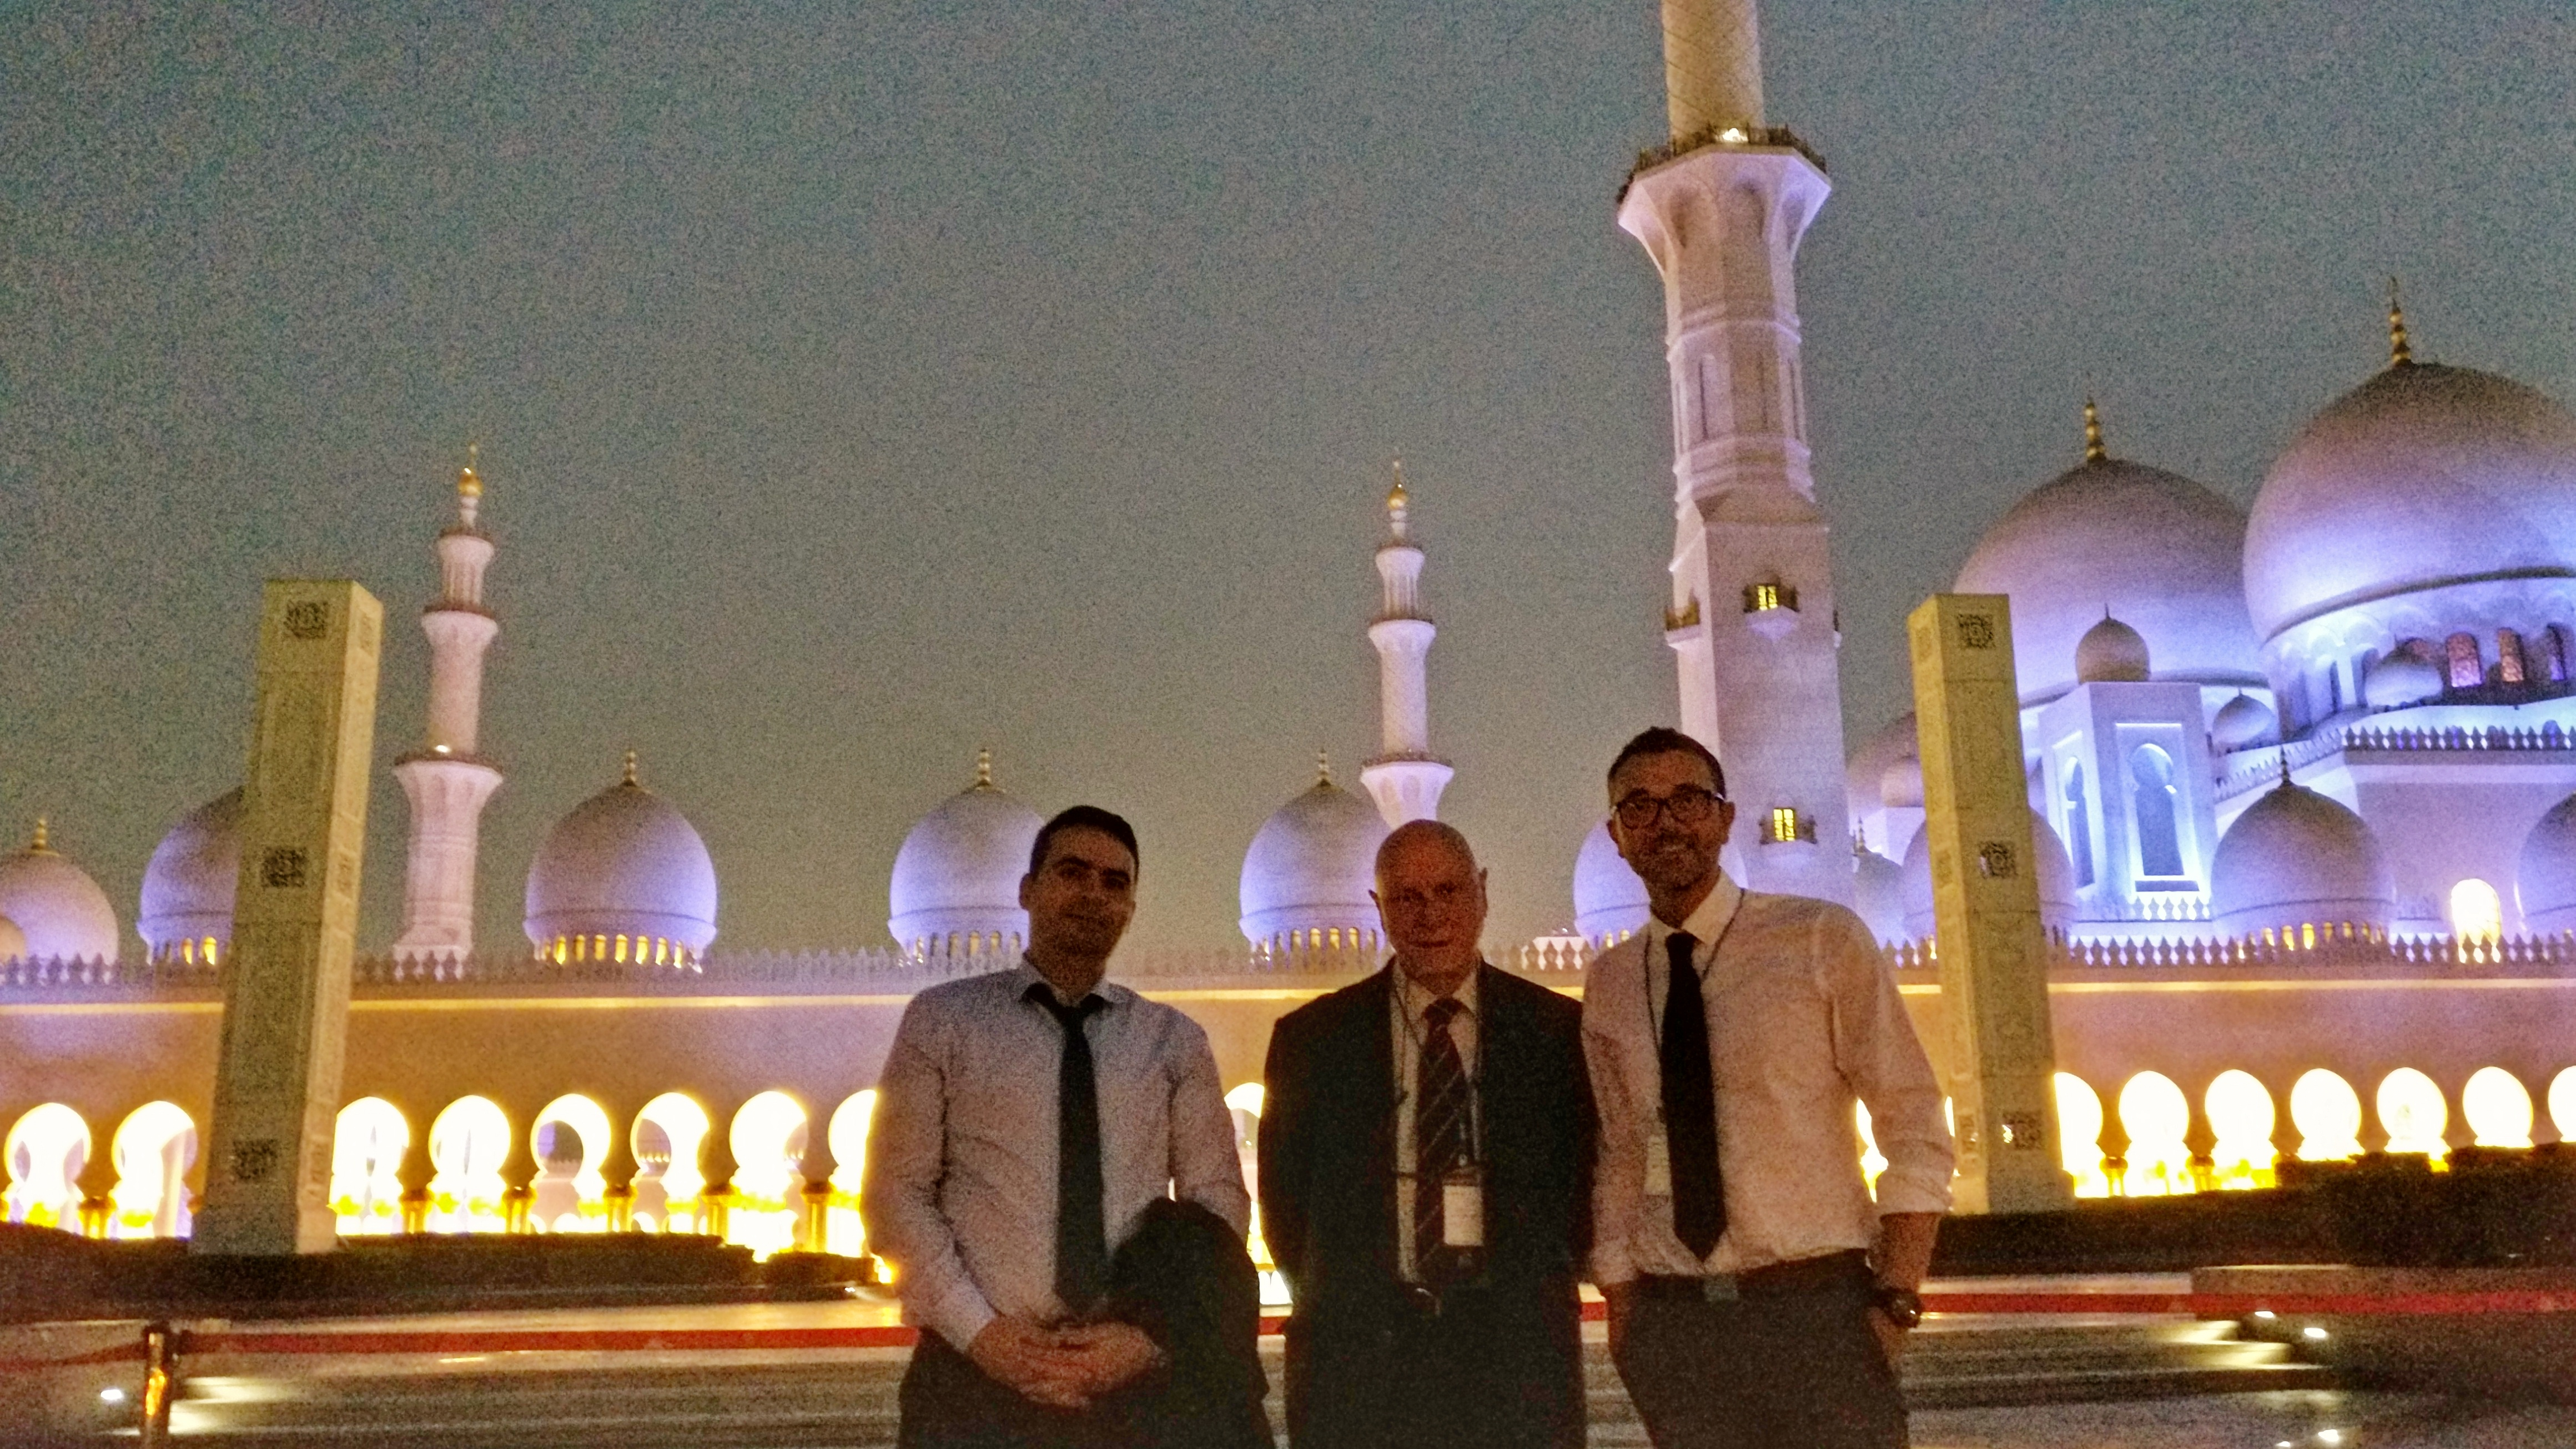 three men smiling in front of the Sheikh Zayed Grand Mosque